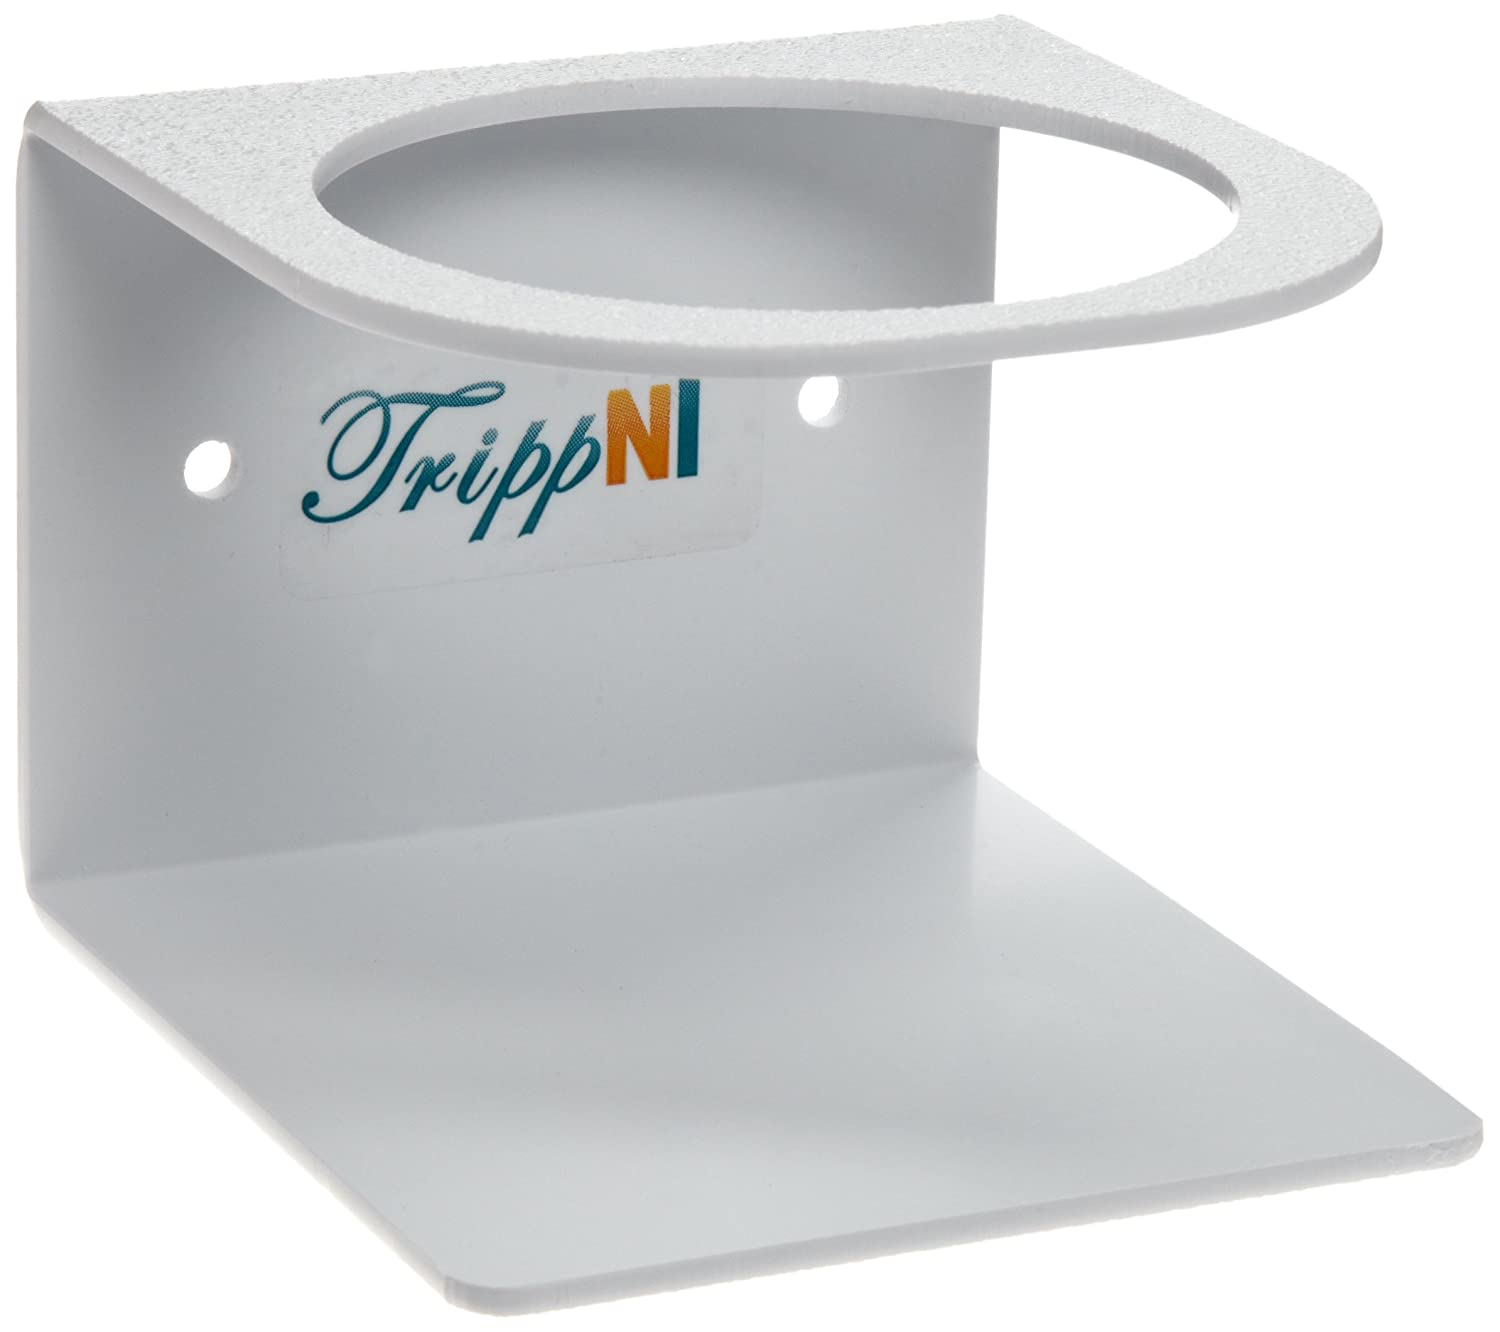 TrippNT 50080 White Acrylonitrile Butadiene Styrene Single Bottle Holder, Stores 1 Bottle of 1L, 4.75